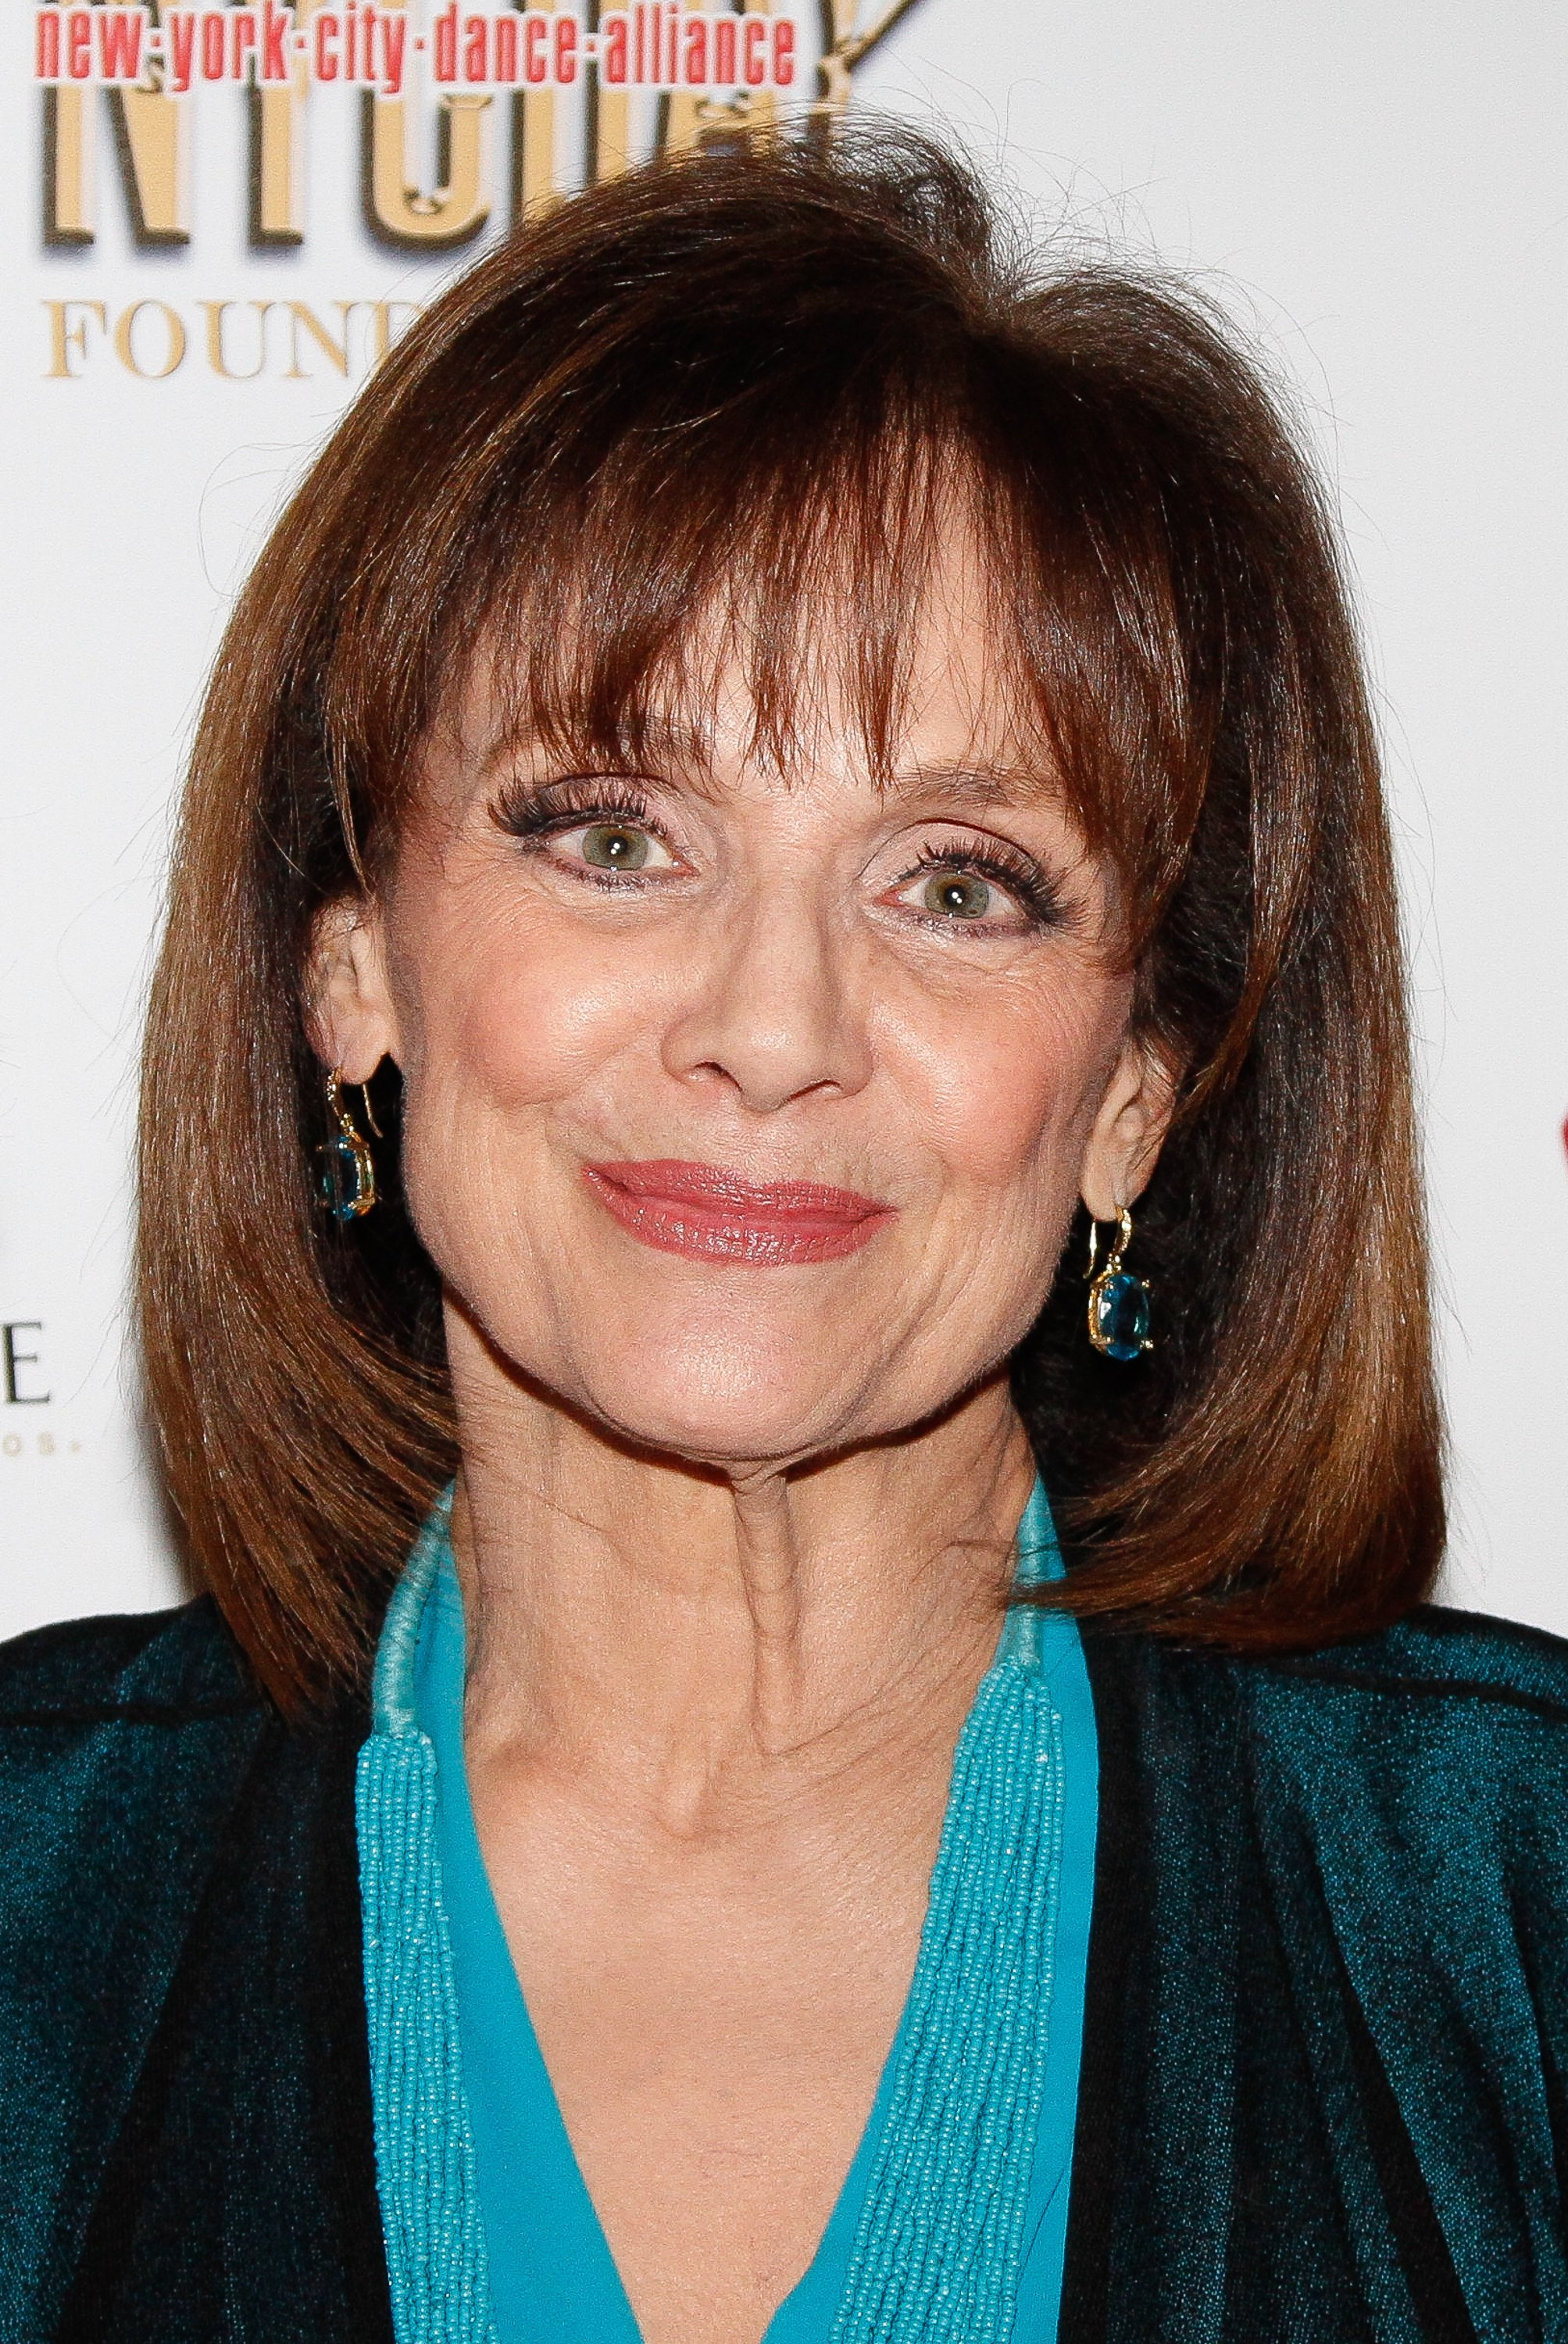 Valerie Harper during the 32nd Annual Fred And Adele Astaire awards at NYU Skirball Center in New York City. | Source: Getty Images